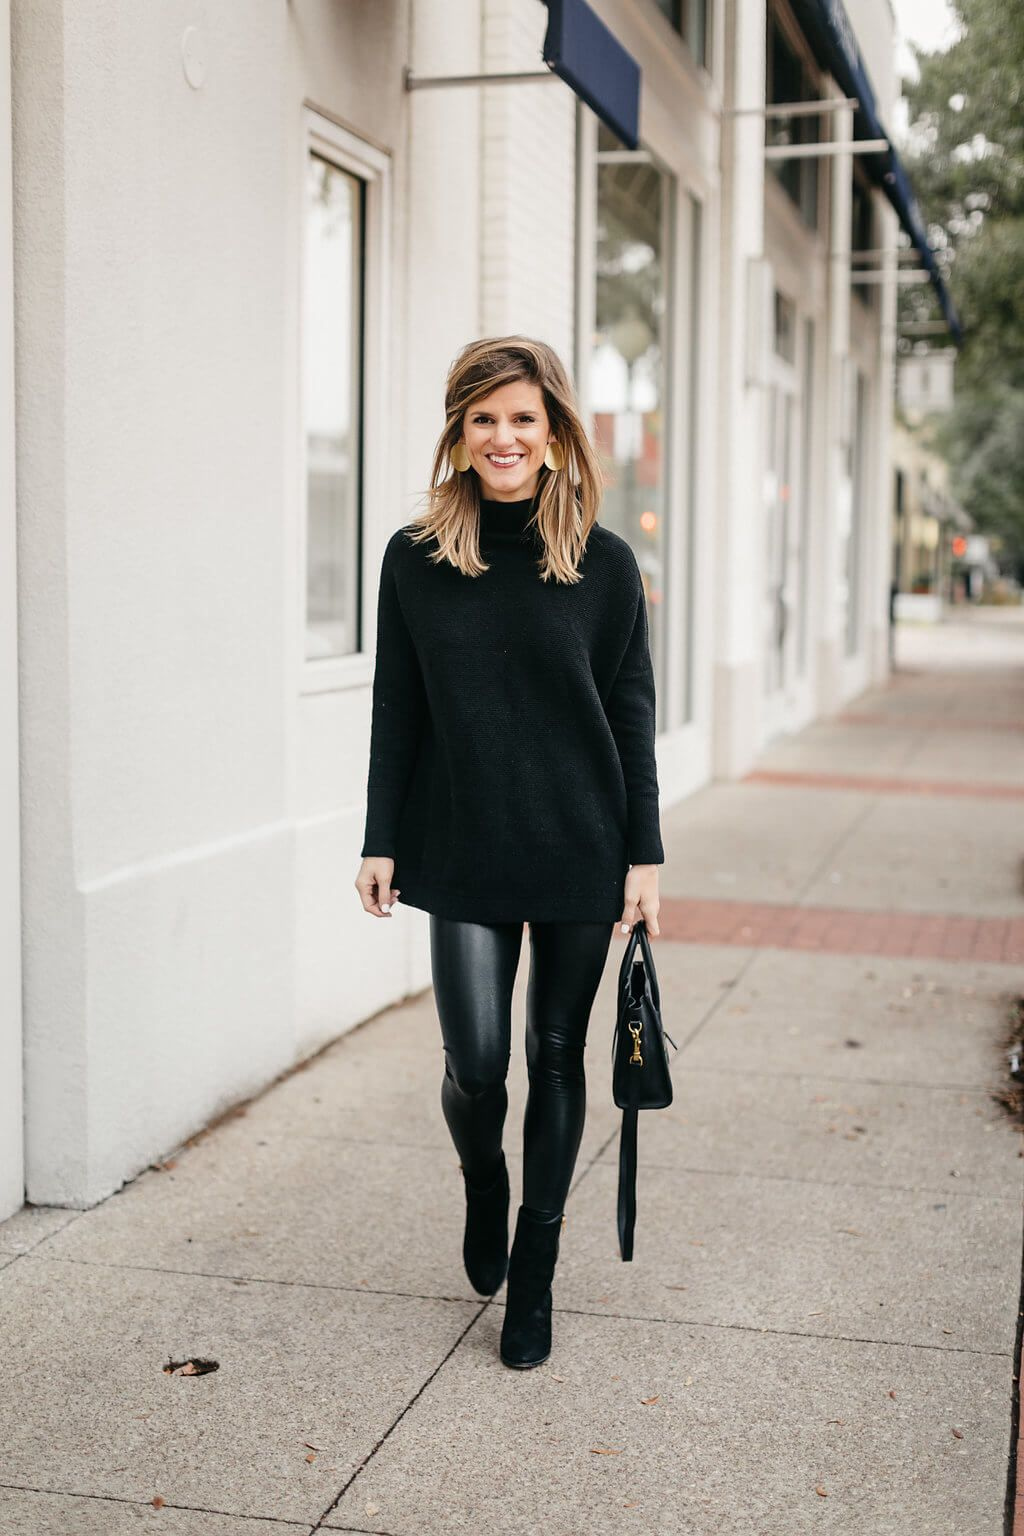 ba0bb2d866776d Leggings Outfit Ideas for Thanksgiving | S T Y L E | Leather ...